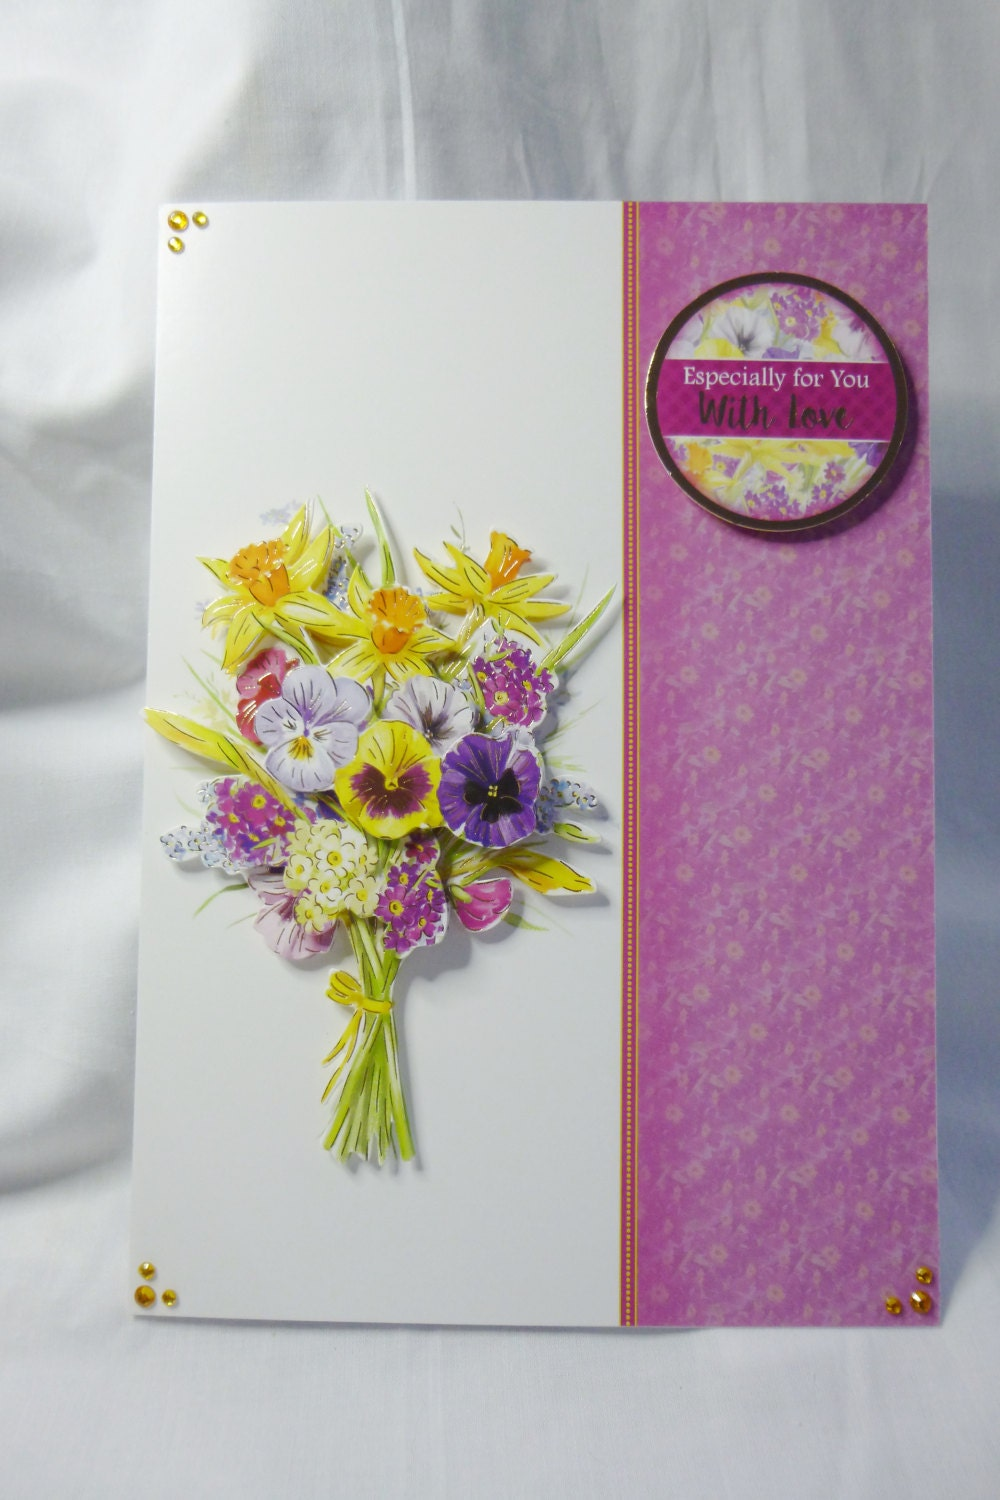 Floral spring flowers birthday card greeting card 3d decoupage floral spring flowers birthday card greeting card 3d decoupage female any age mother daughter sister niece aunt friend izmirmasajfo